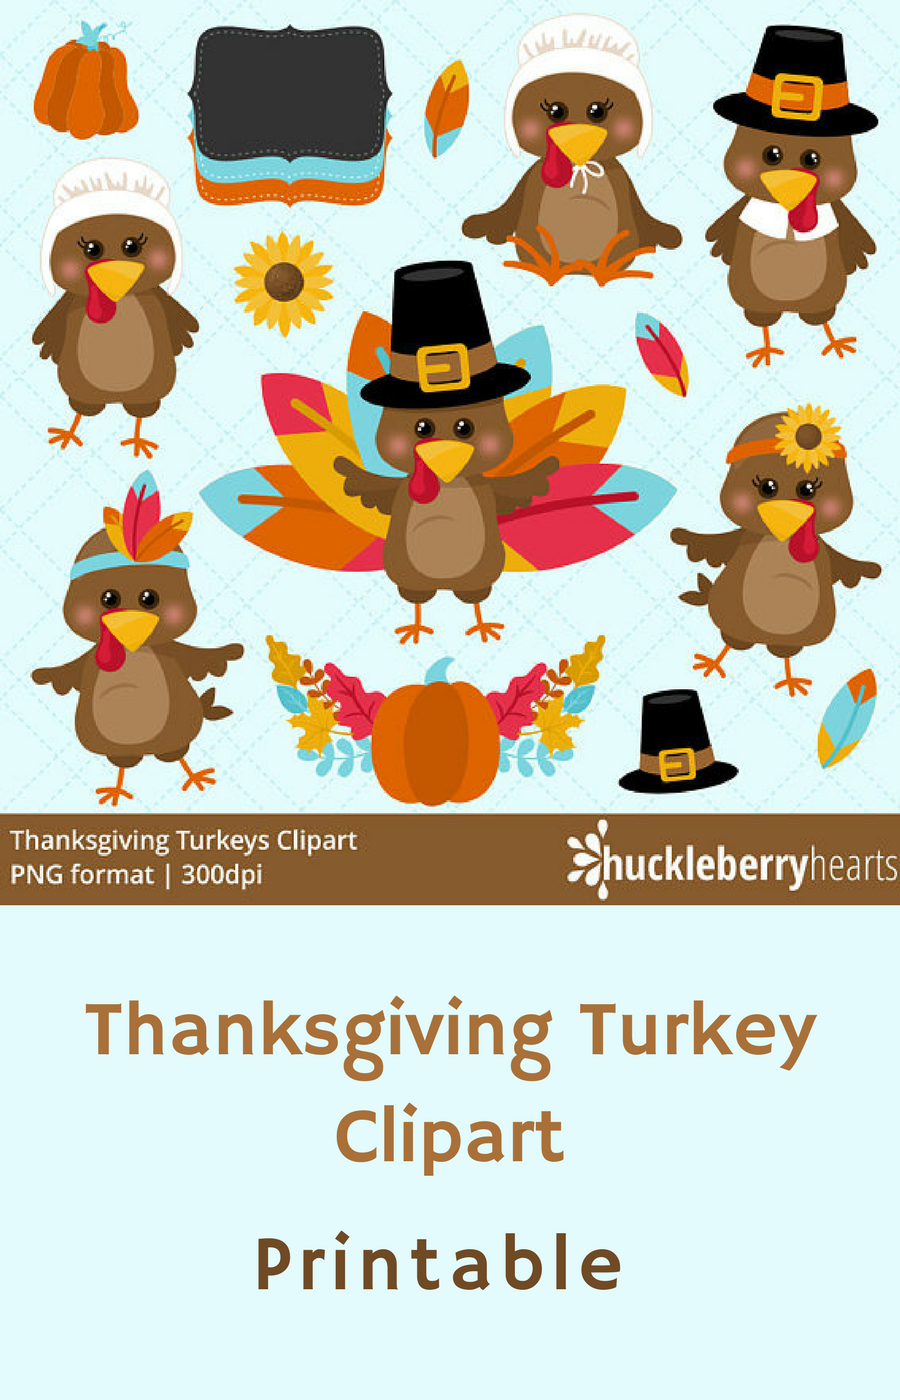 i love this cute thanksgiving clipart turkey clip art turkey clip art turkey graphics printable commercial use nnt afflink clipart printable  [ 900 x 1400 Pixel ]